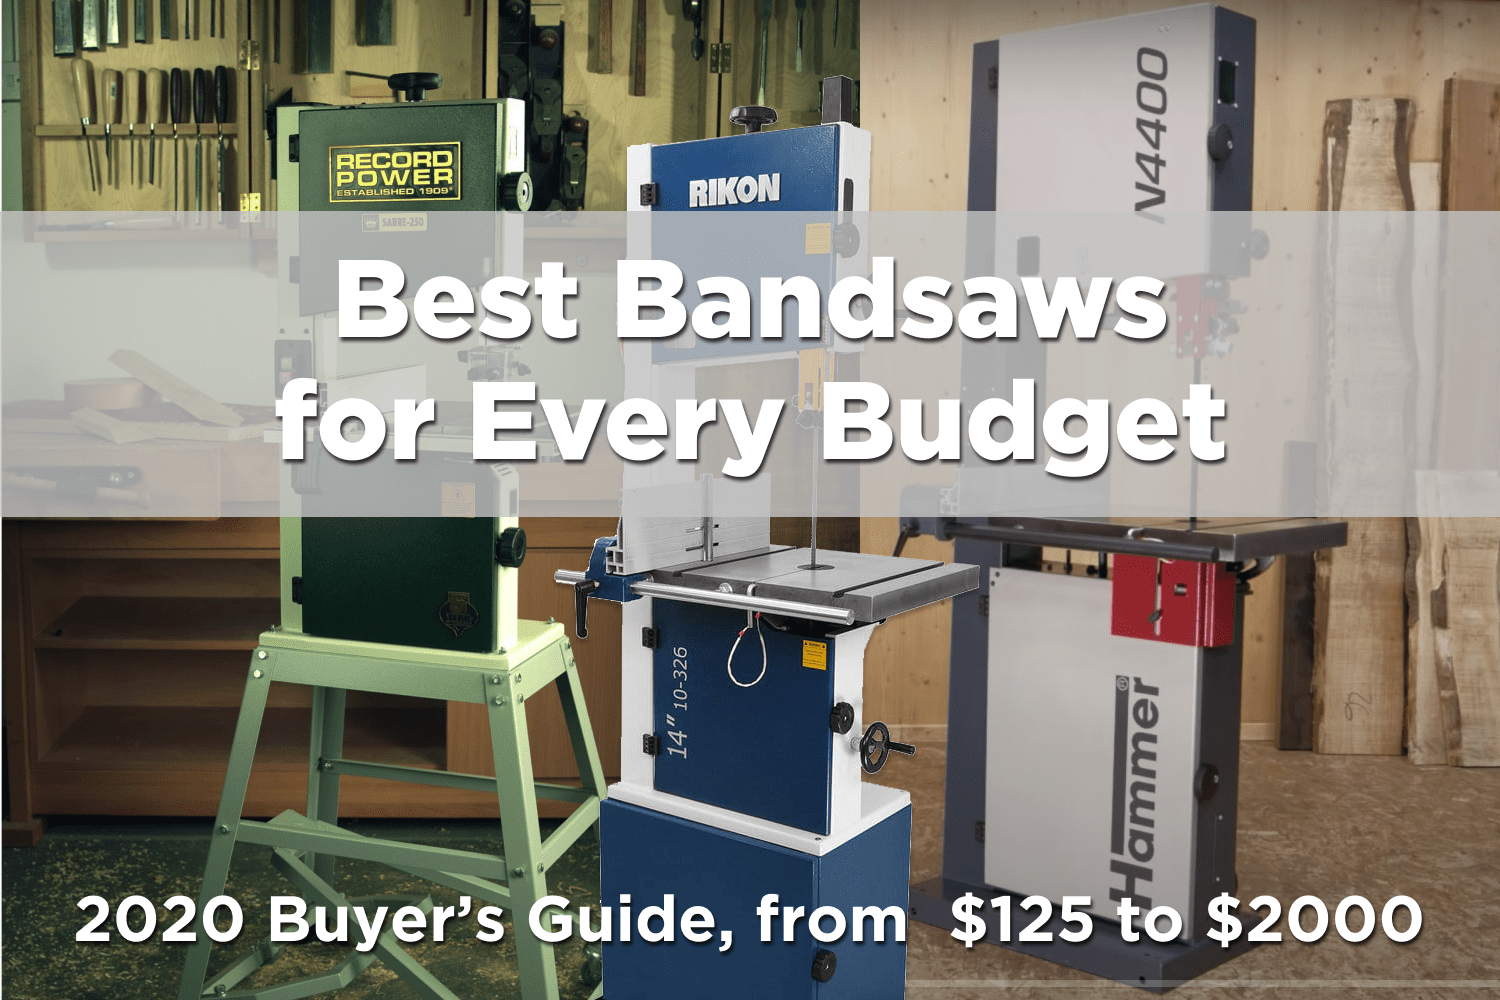 The best Bandsaw for every budget – 2020 Buyer's Guide